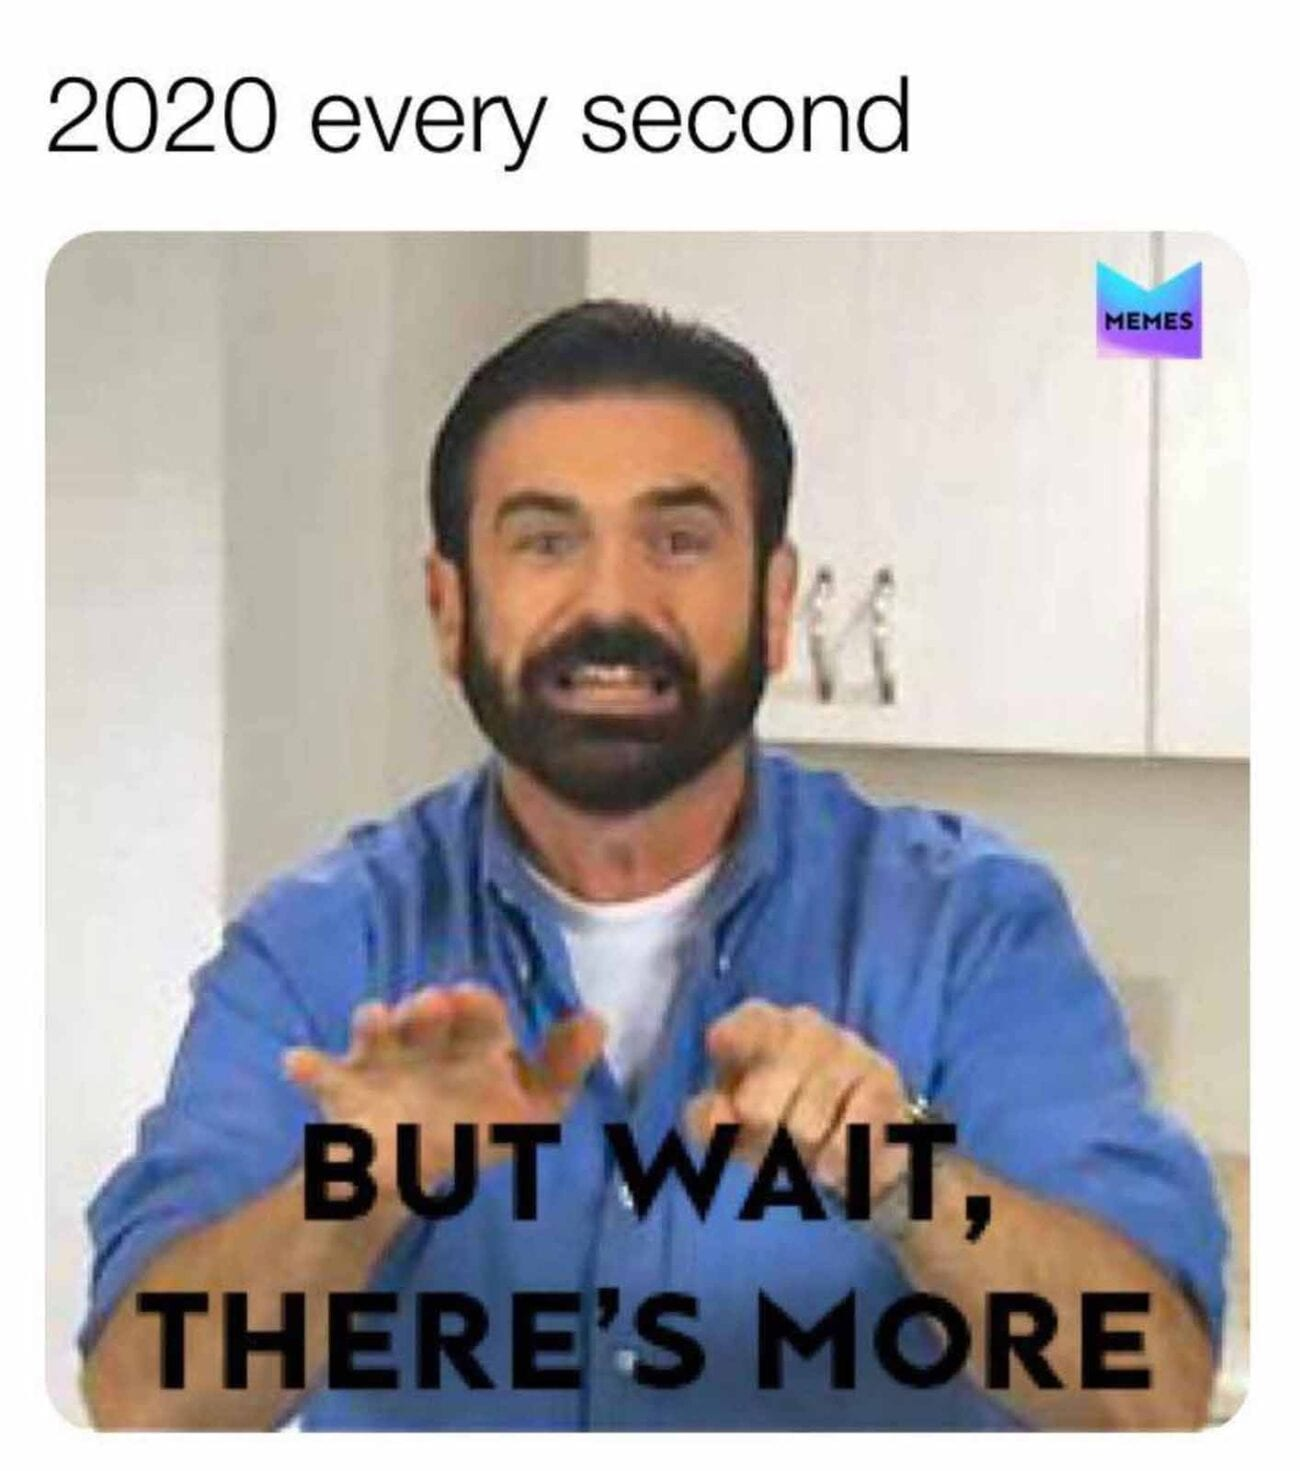 2020 is a dumpster fire: These memes nail exactly how we're feeling